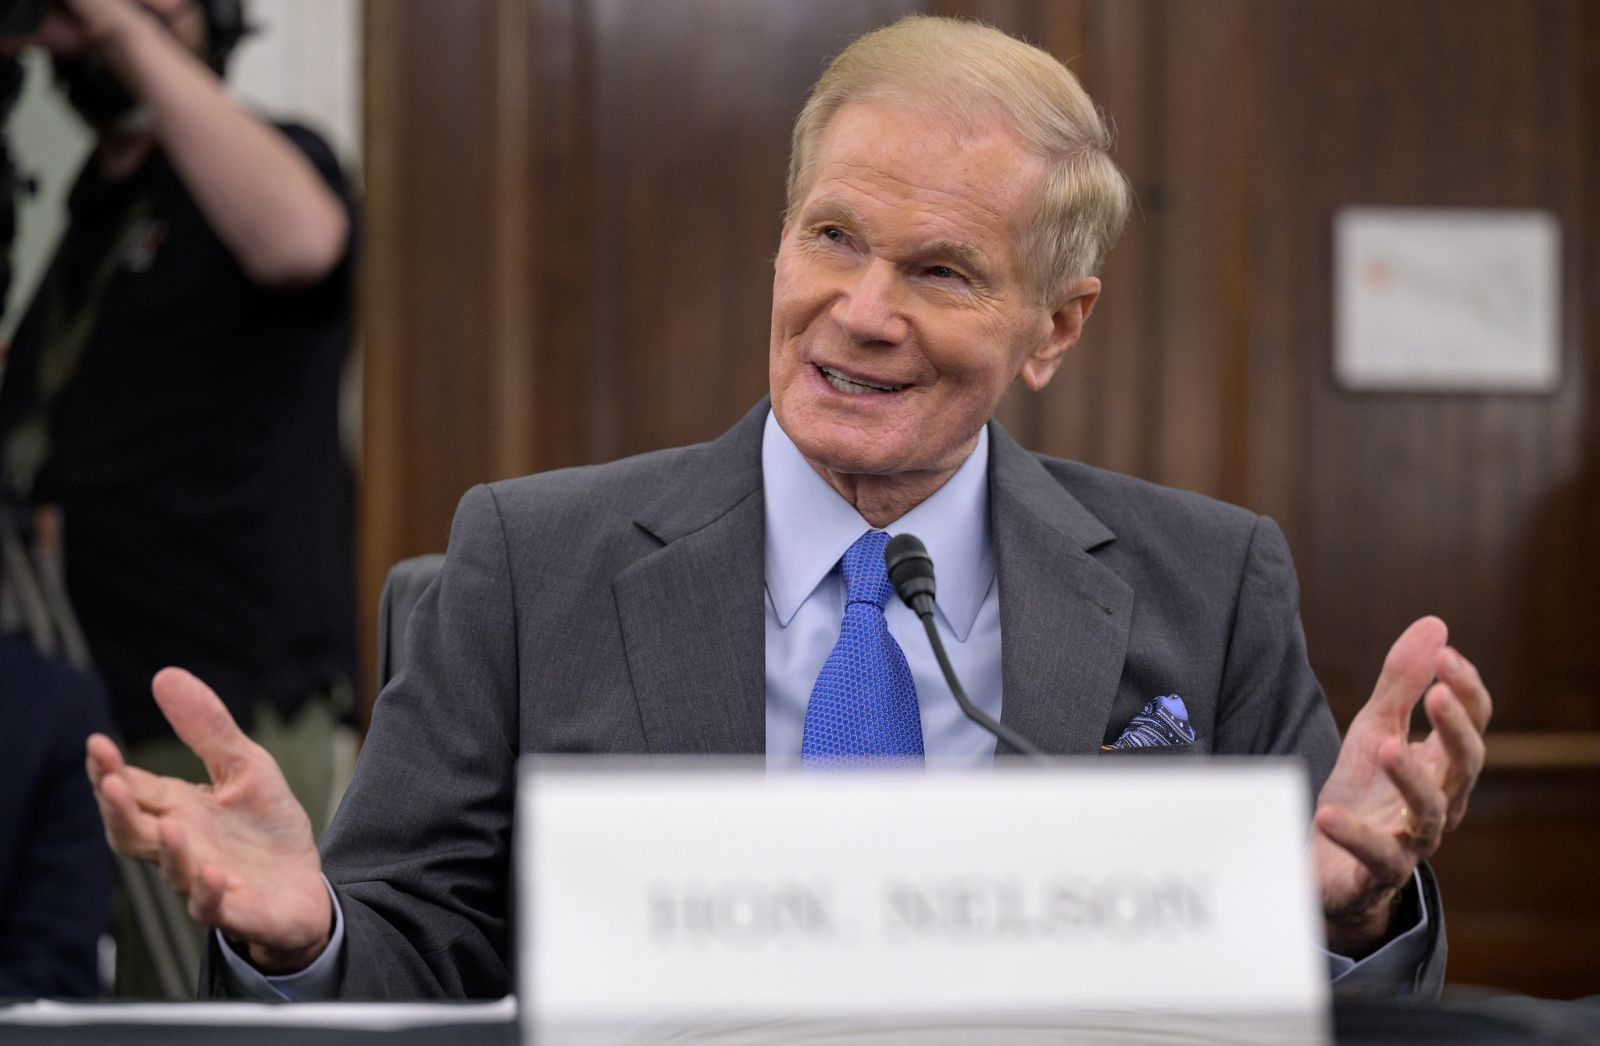 Former U.S. Senator Bill Nelson appears before the Senate Committee on Commerce, Science, and Transportation April 21, 2021, in the Russell Senate Office Building in Washington. Photo and Caption Credit: NASA/Bill Ingalls